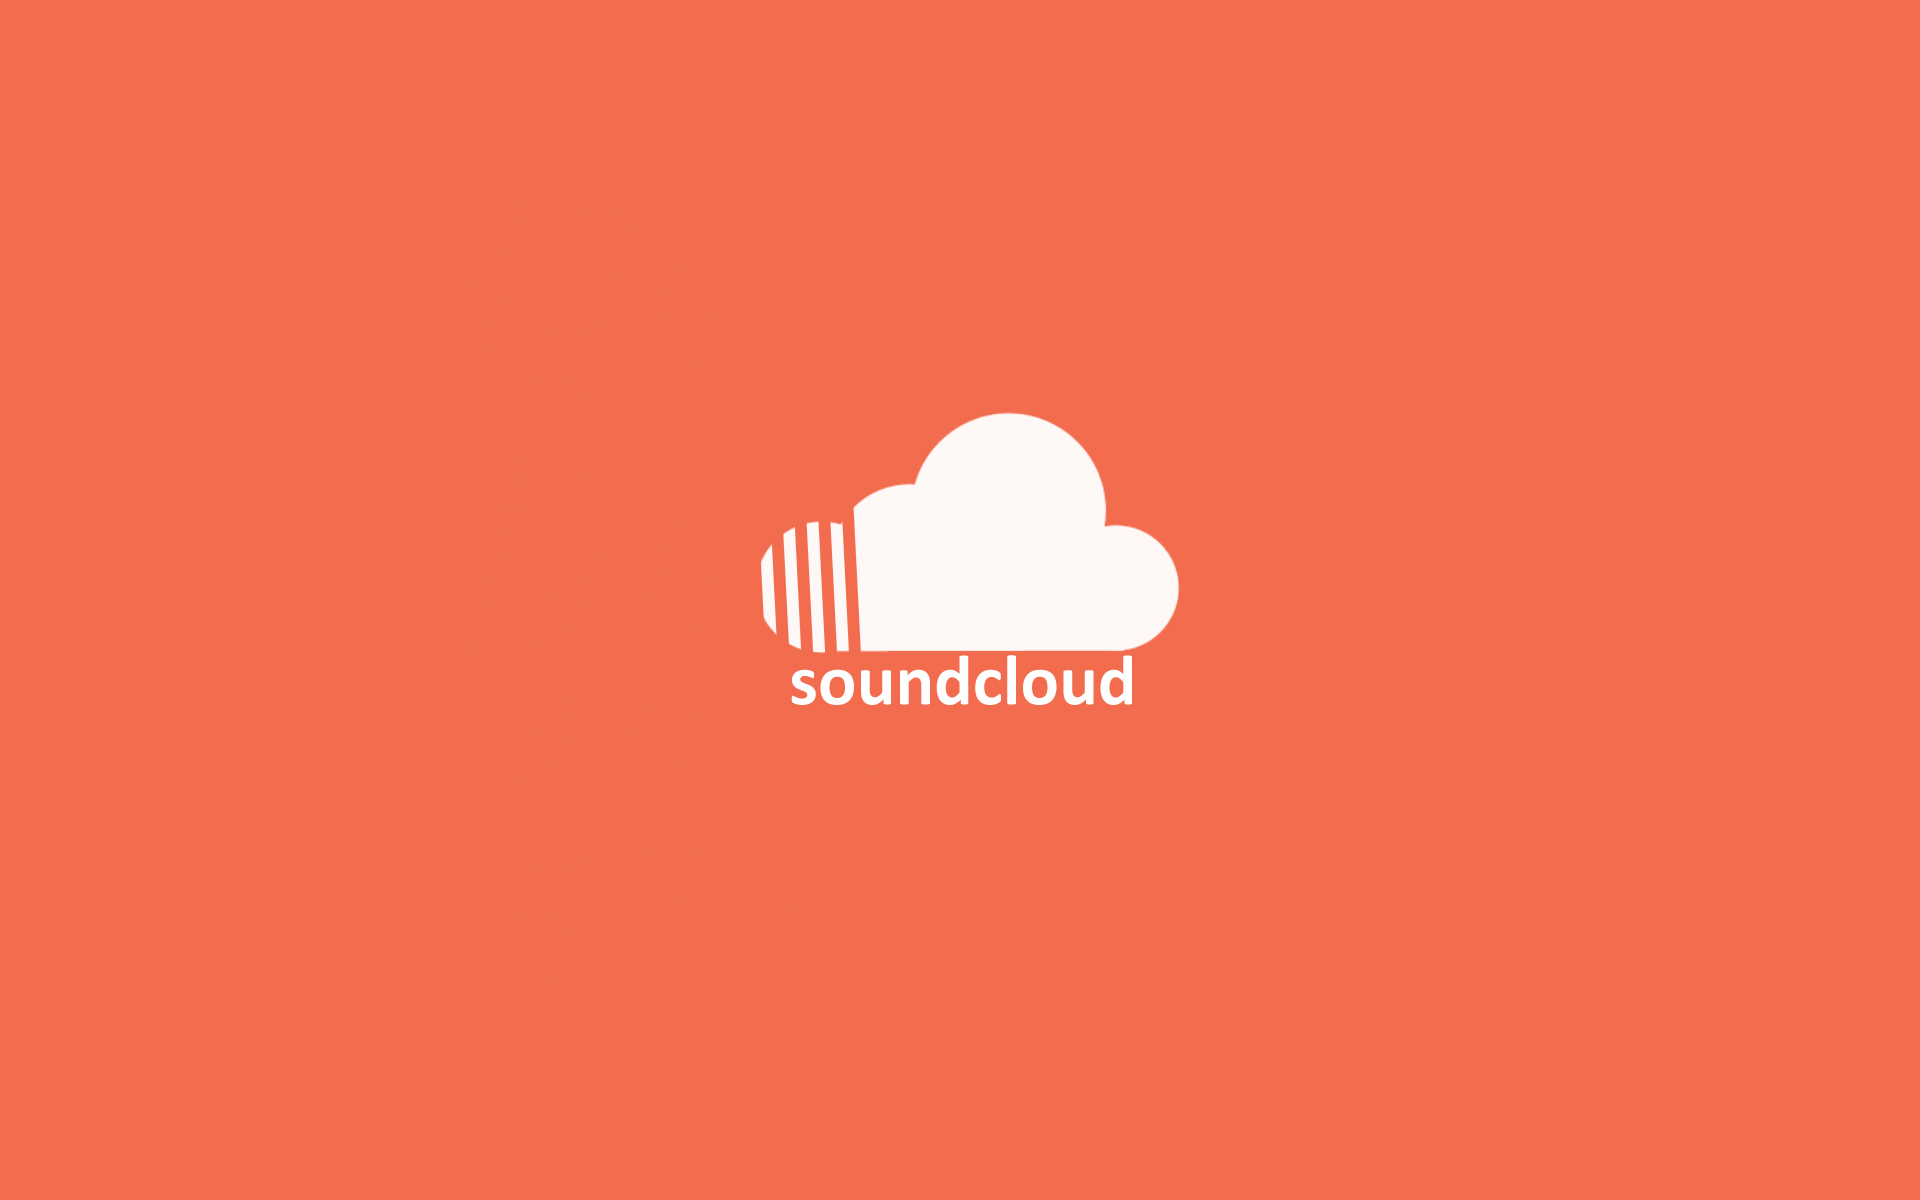 soundcloud logo wallpaper 66508